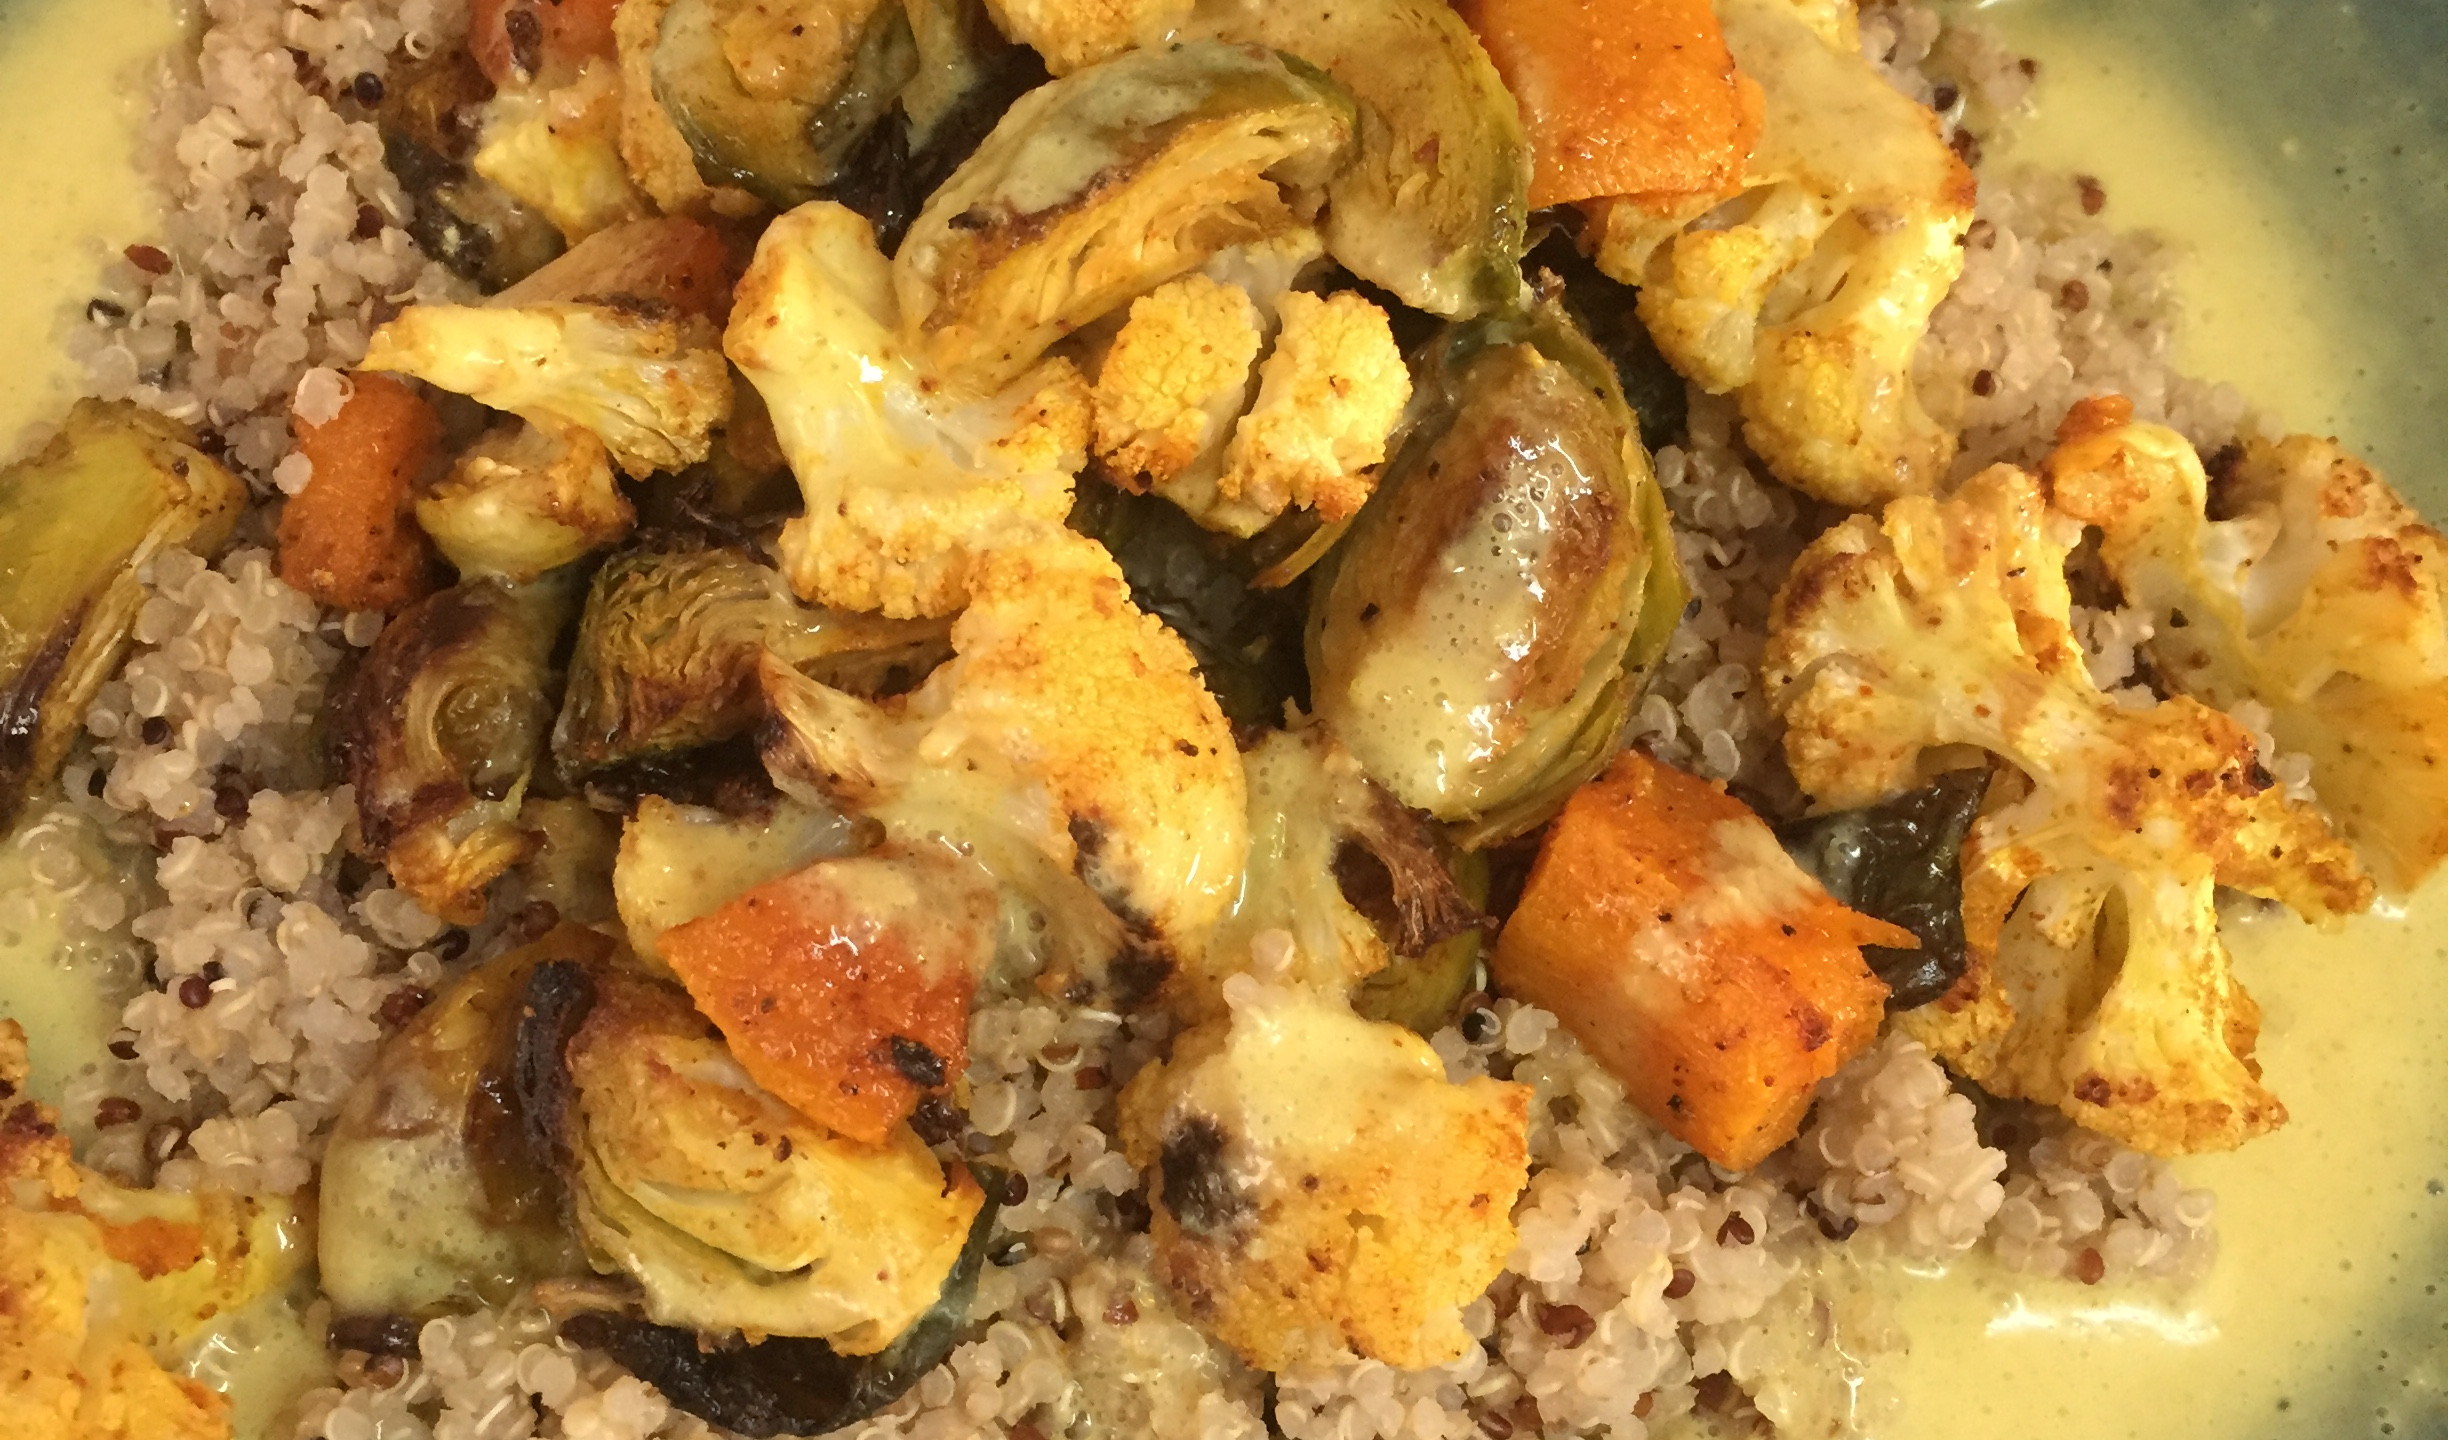 Roasted Veggies over Quinoa with Cur